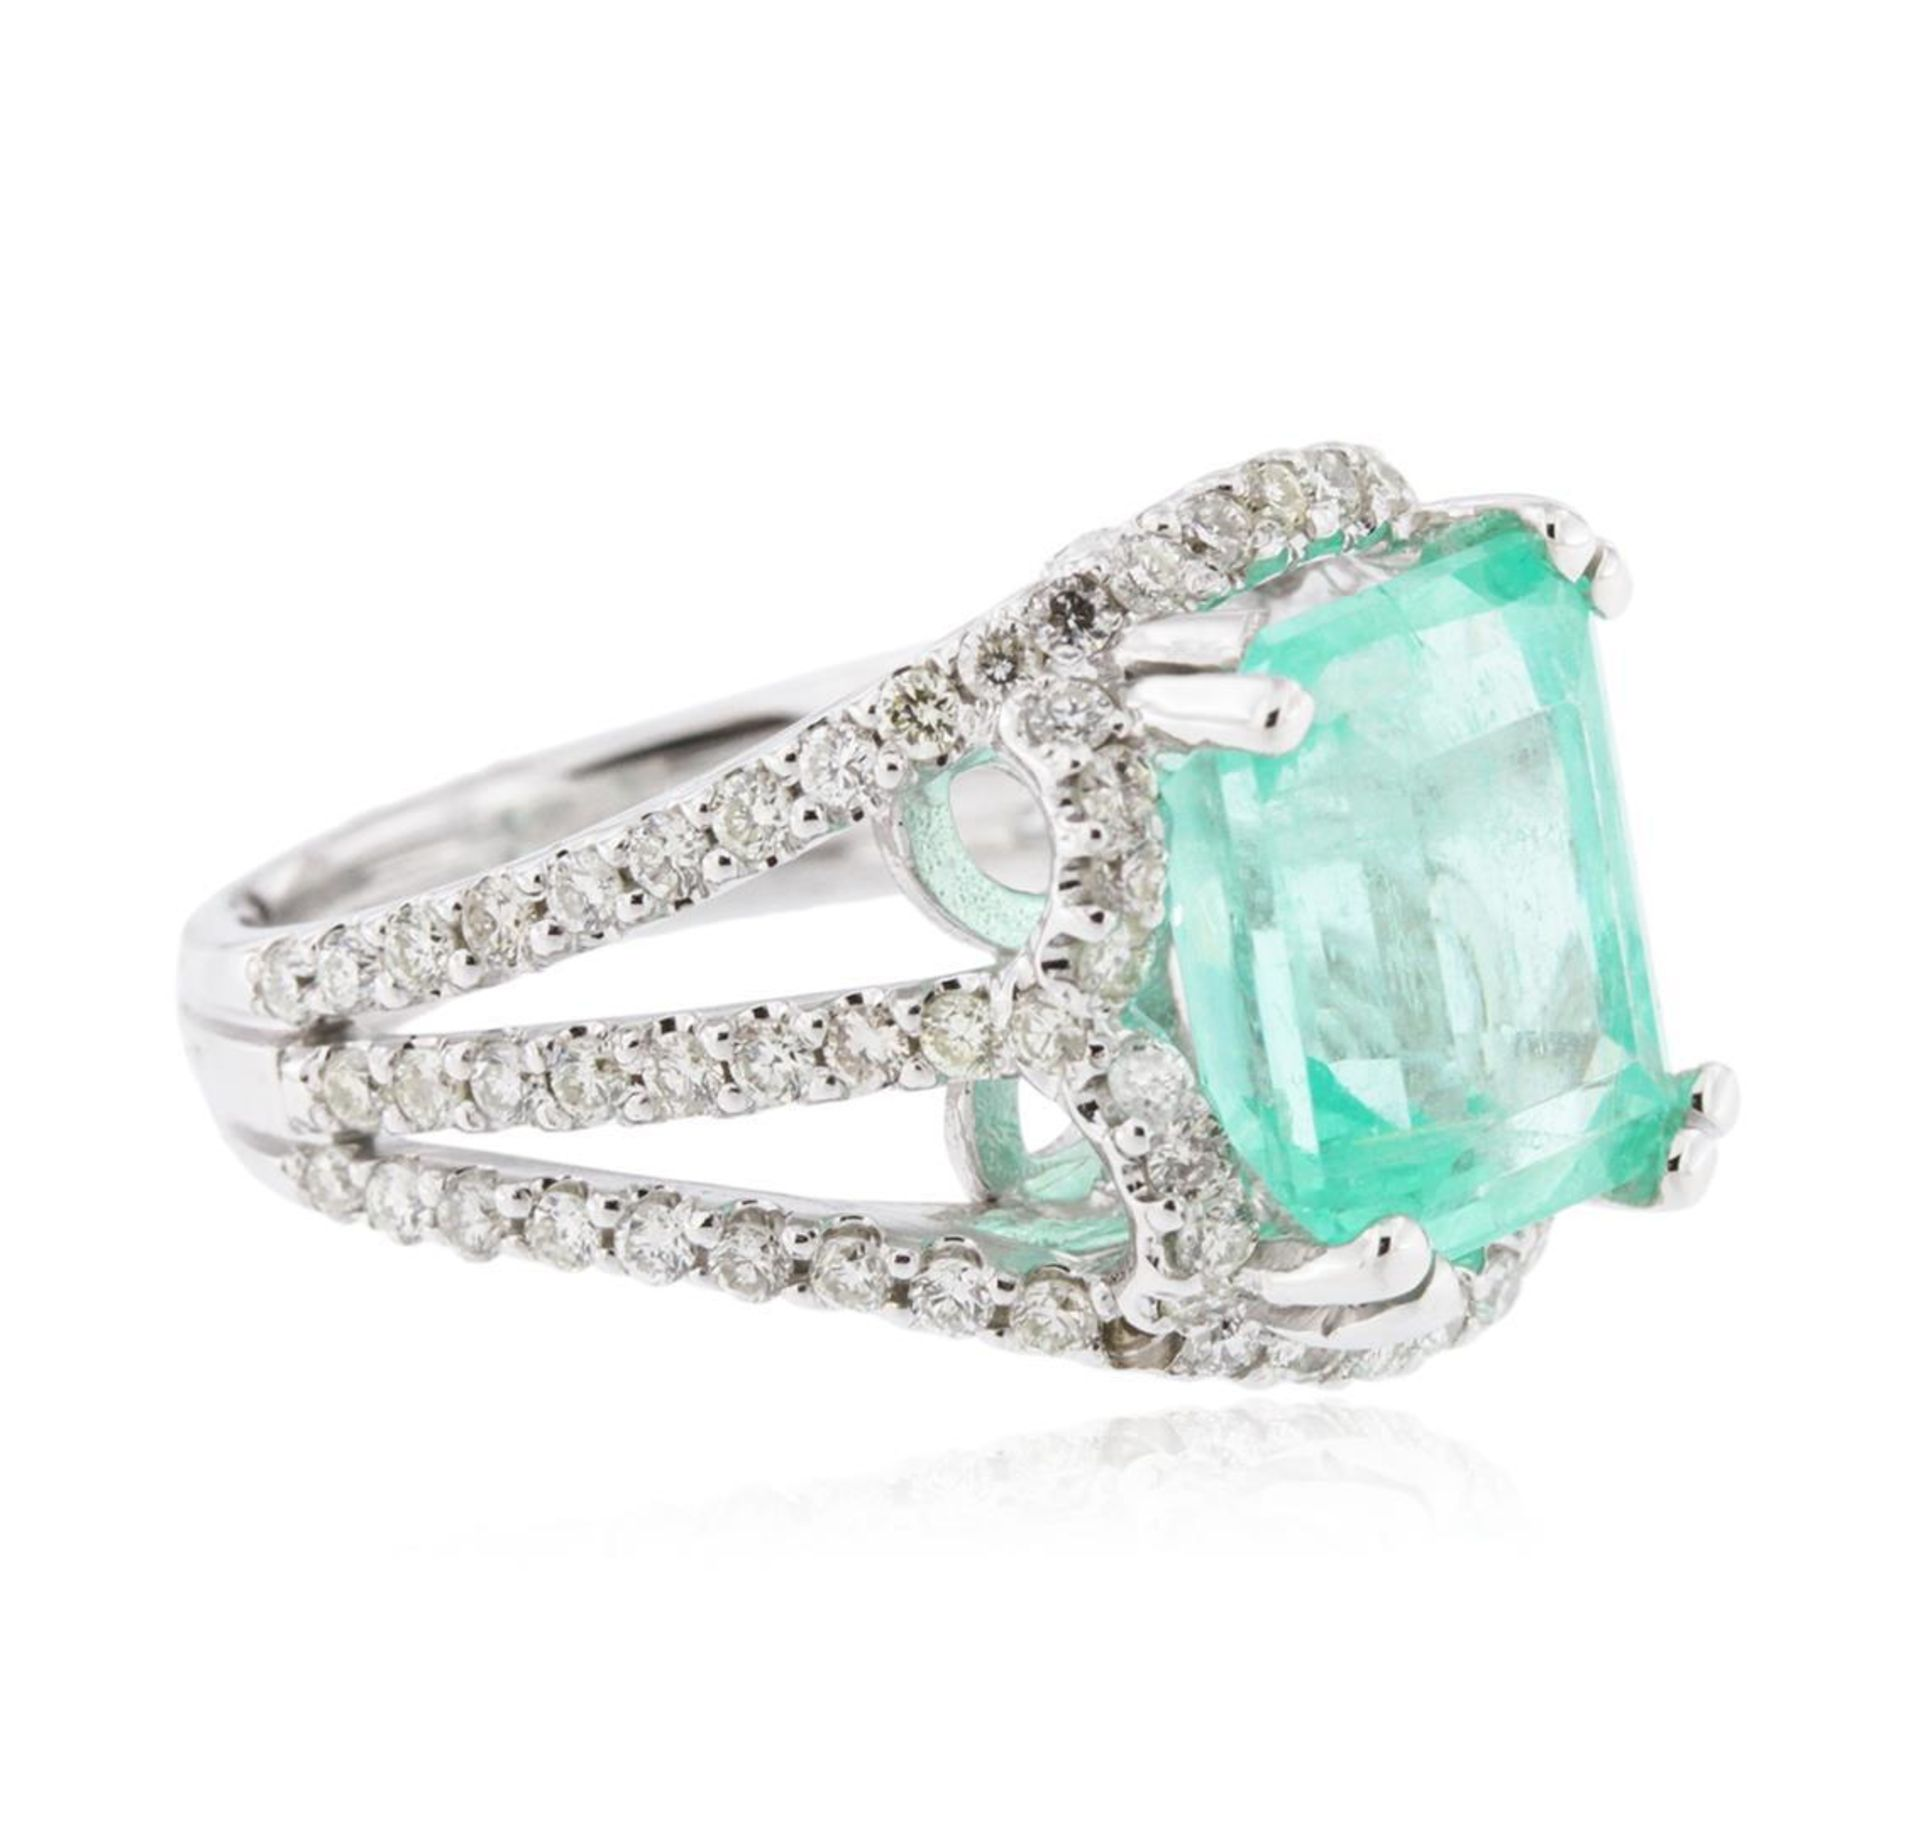 14KT White Gold 5.58ct Emerald and Diamond Ring - Image 2 of 4